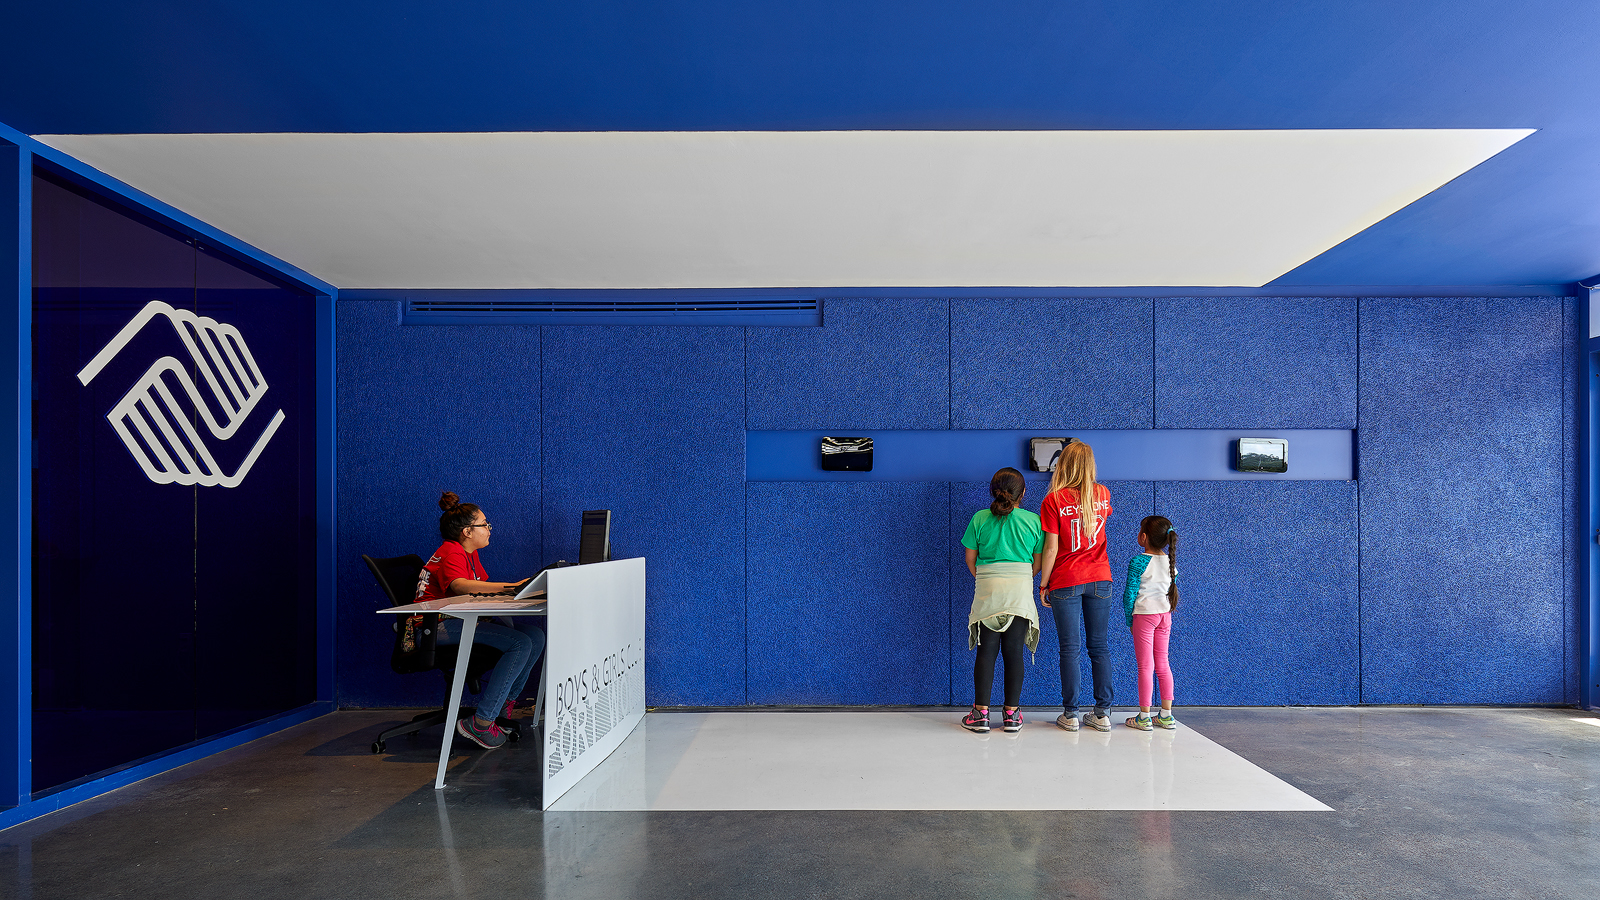 Dror Baldinger FAIA architectural photography award winning Boys and Girls club blue walls and ceiling